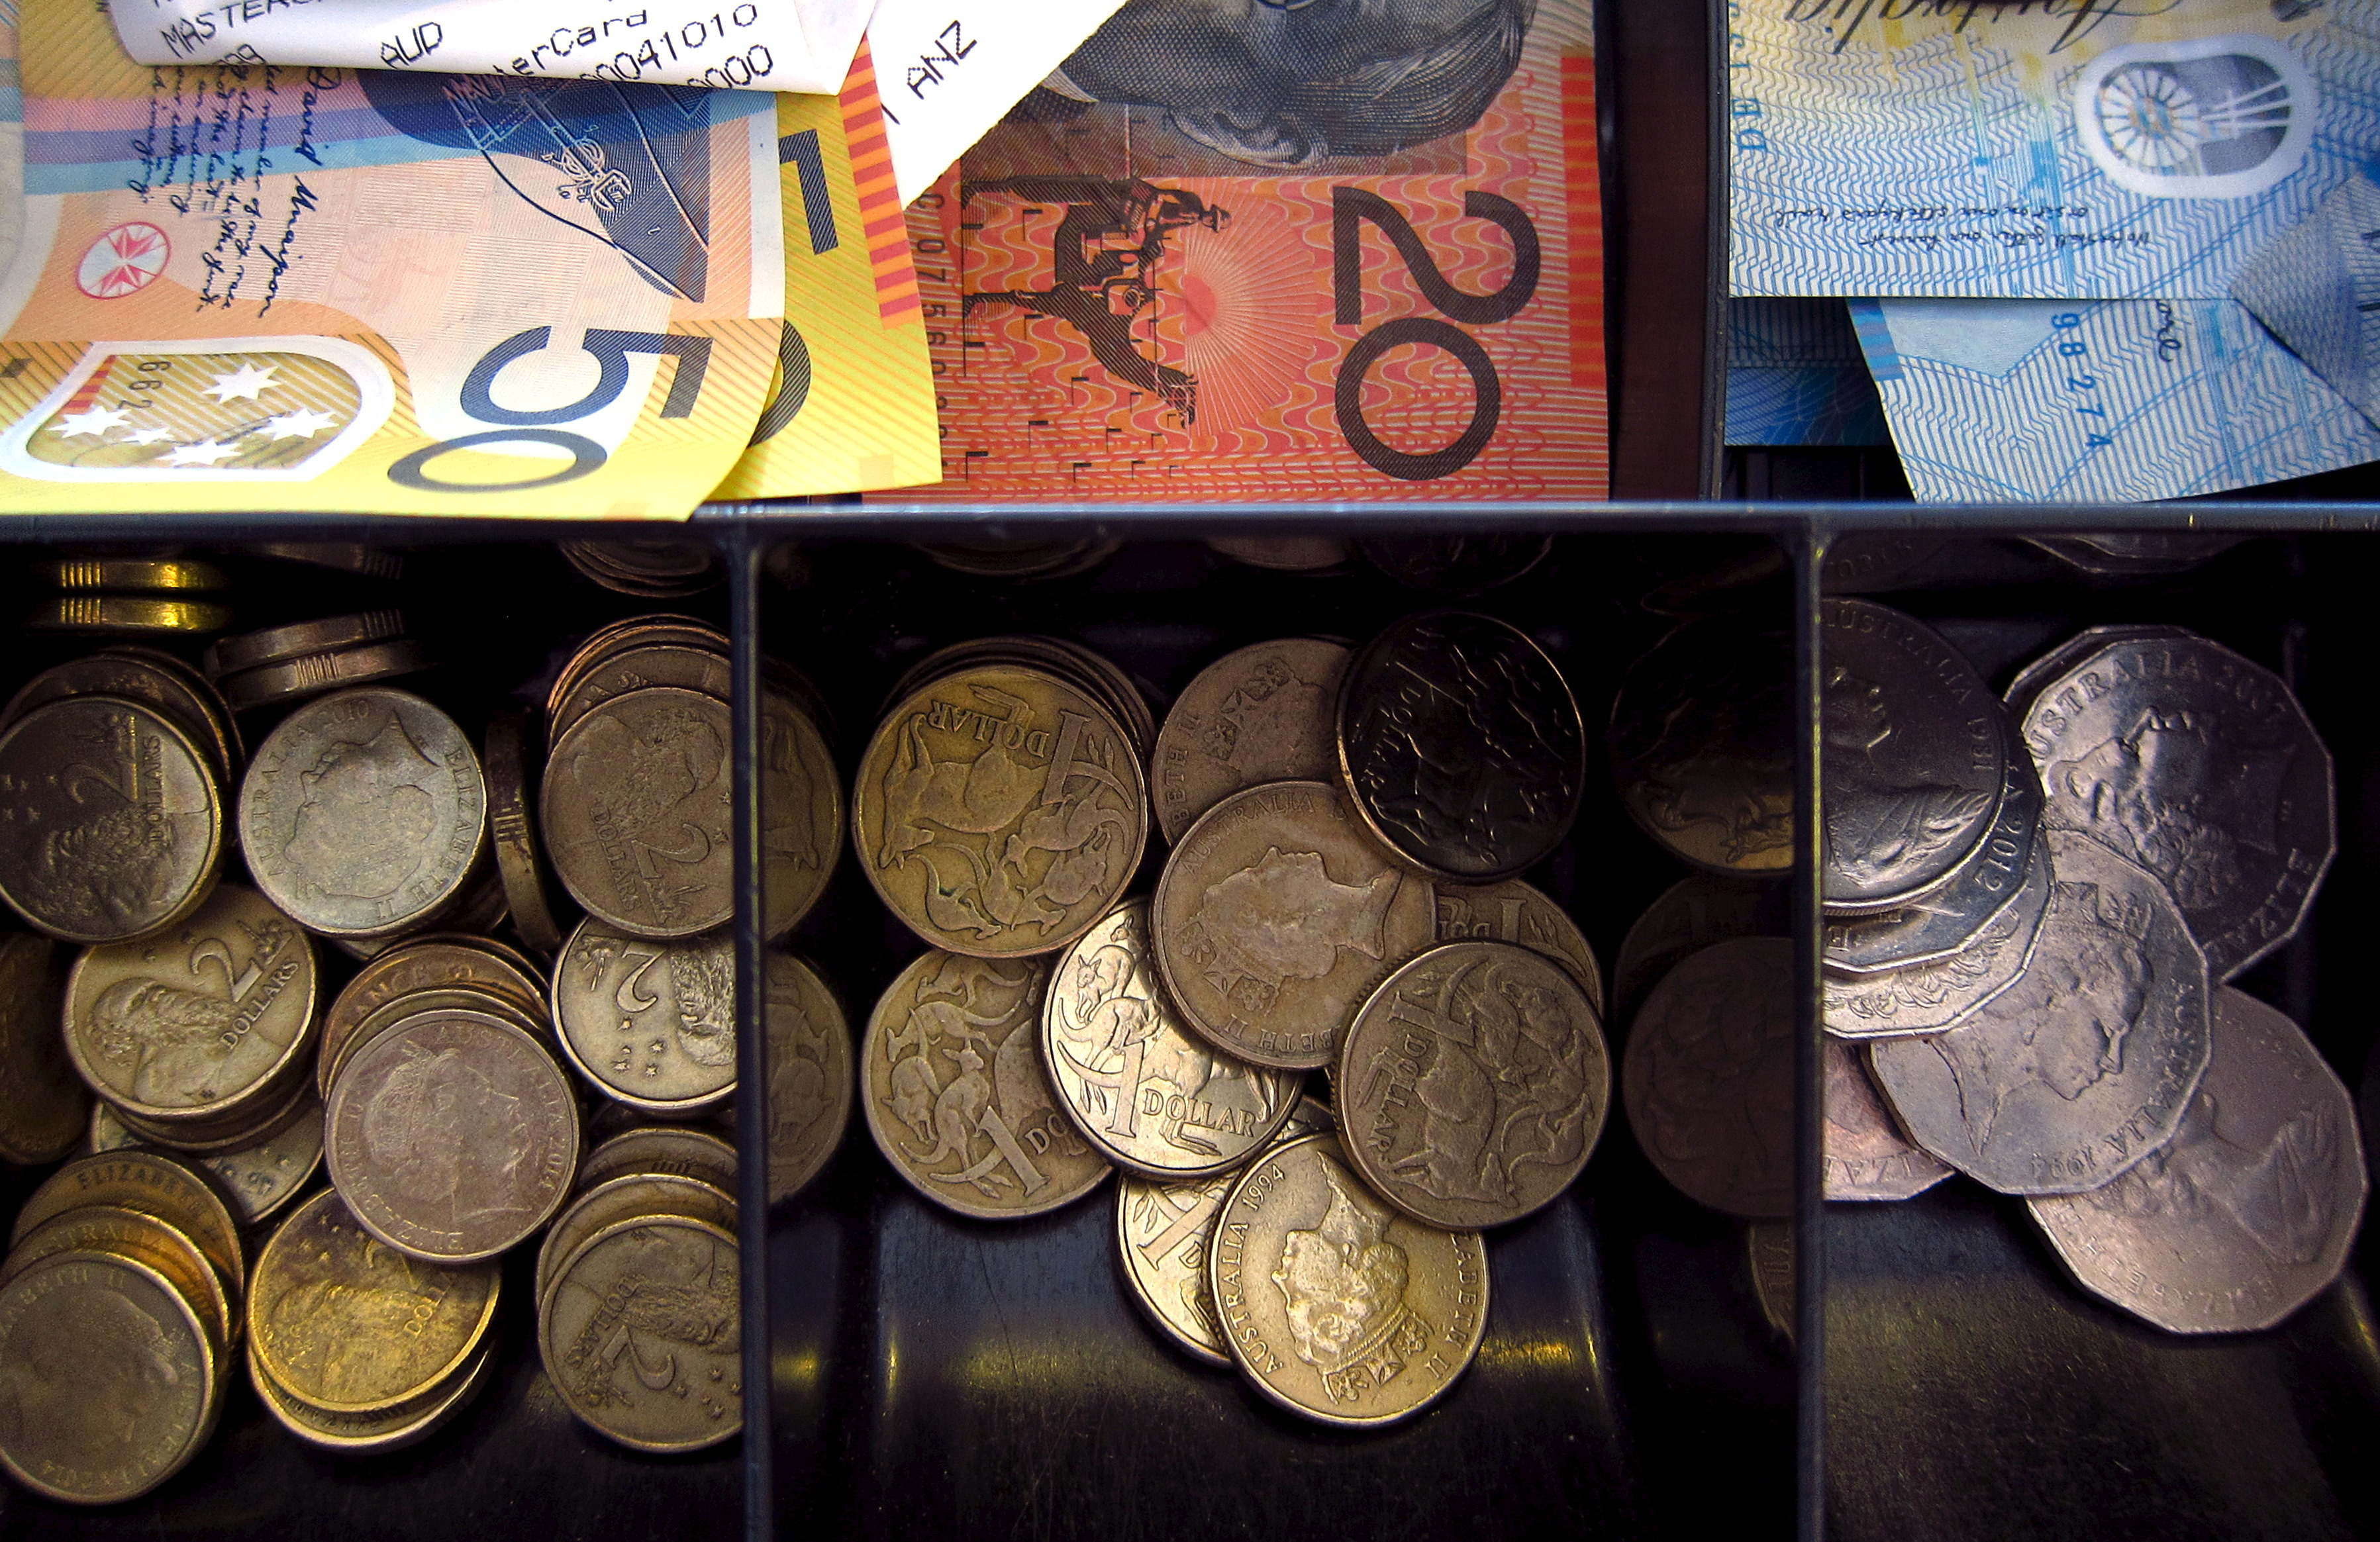 Australian dollar notes and coins can be seen in a cash register at a store in Sydney, Australia, February 11, 2016. The Australian and New Zealand dollars rose to their highest in nearly a week on Thursday as the greenback stayed on the defensive after the head of the Federal Reserve gave investors no reason to expect U.S. rates will be lifted any time soon. REUTERS/David Gray - GF10000304063